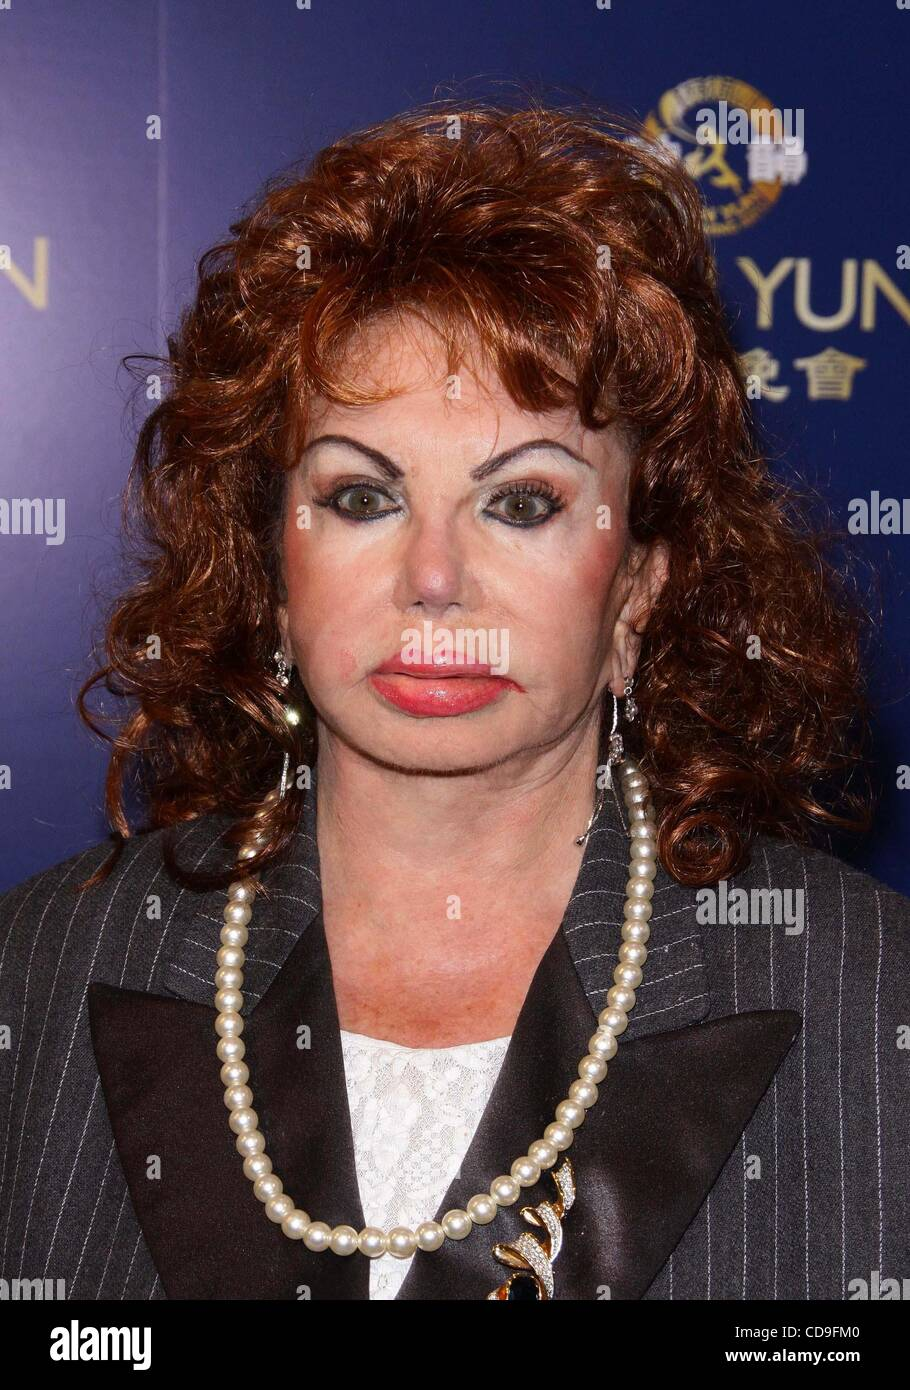 Jackie Stallone 08/11/2014 The Los Angeles Premiere of ...  |Jackie Stallone